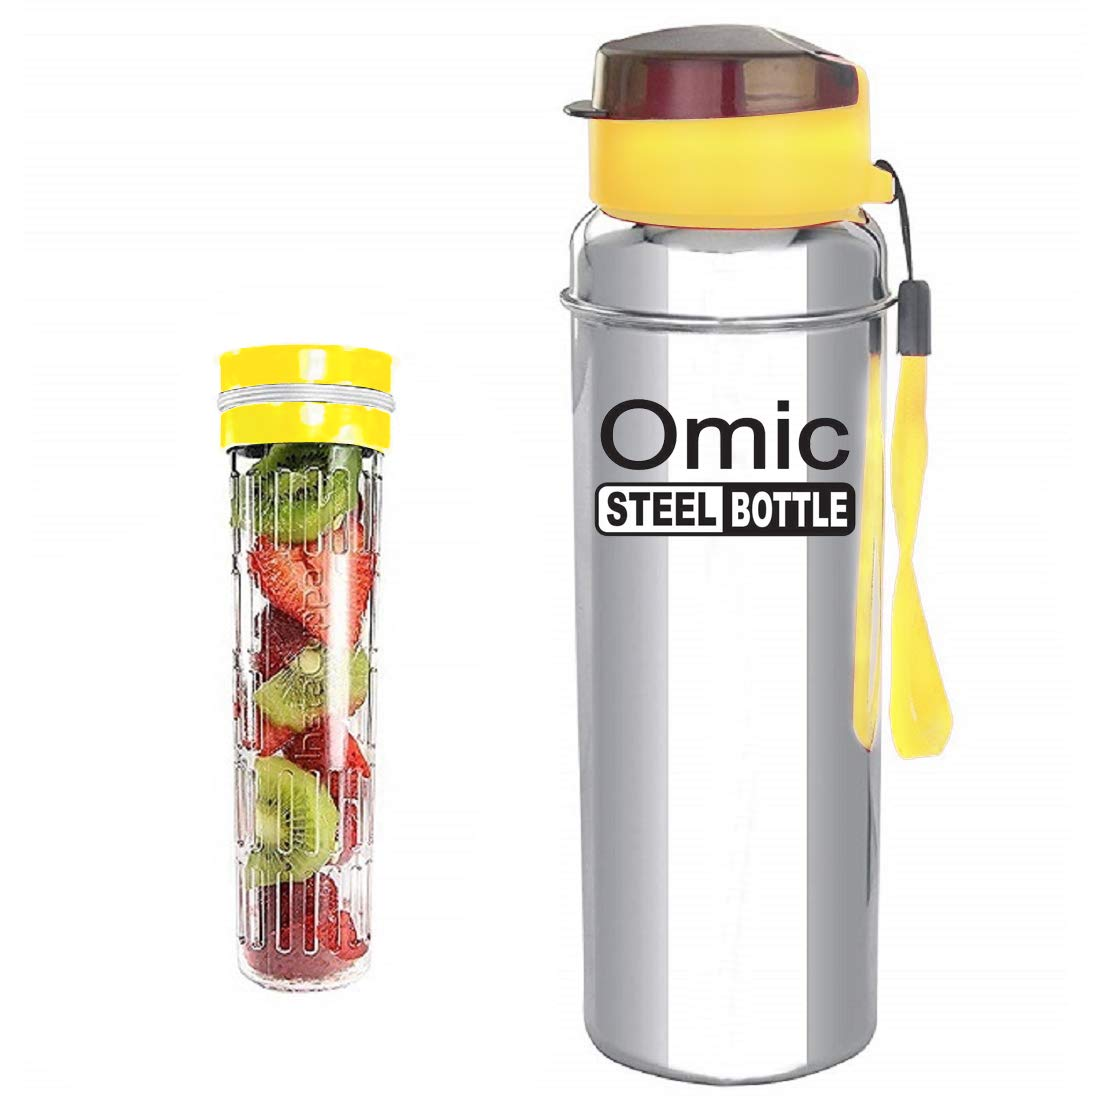 Omic Stainless Steel Fruit Infuser Water Bottle, Stainless Steel Bottle with Infusion Unit, (Color May Be Vary) (1000)